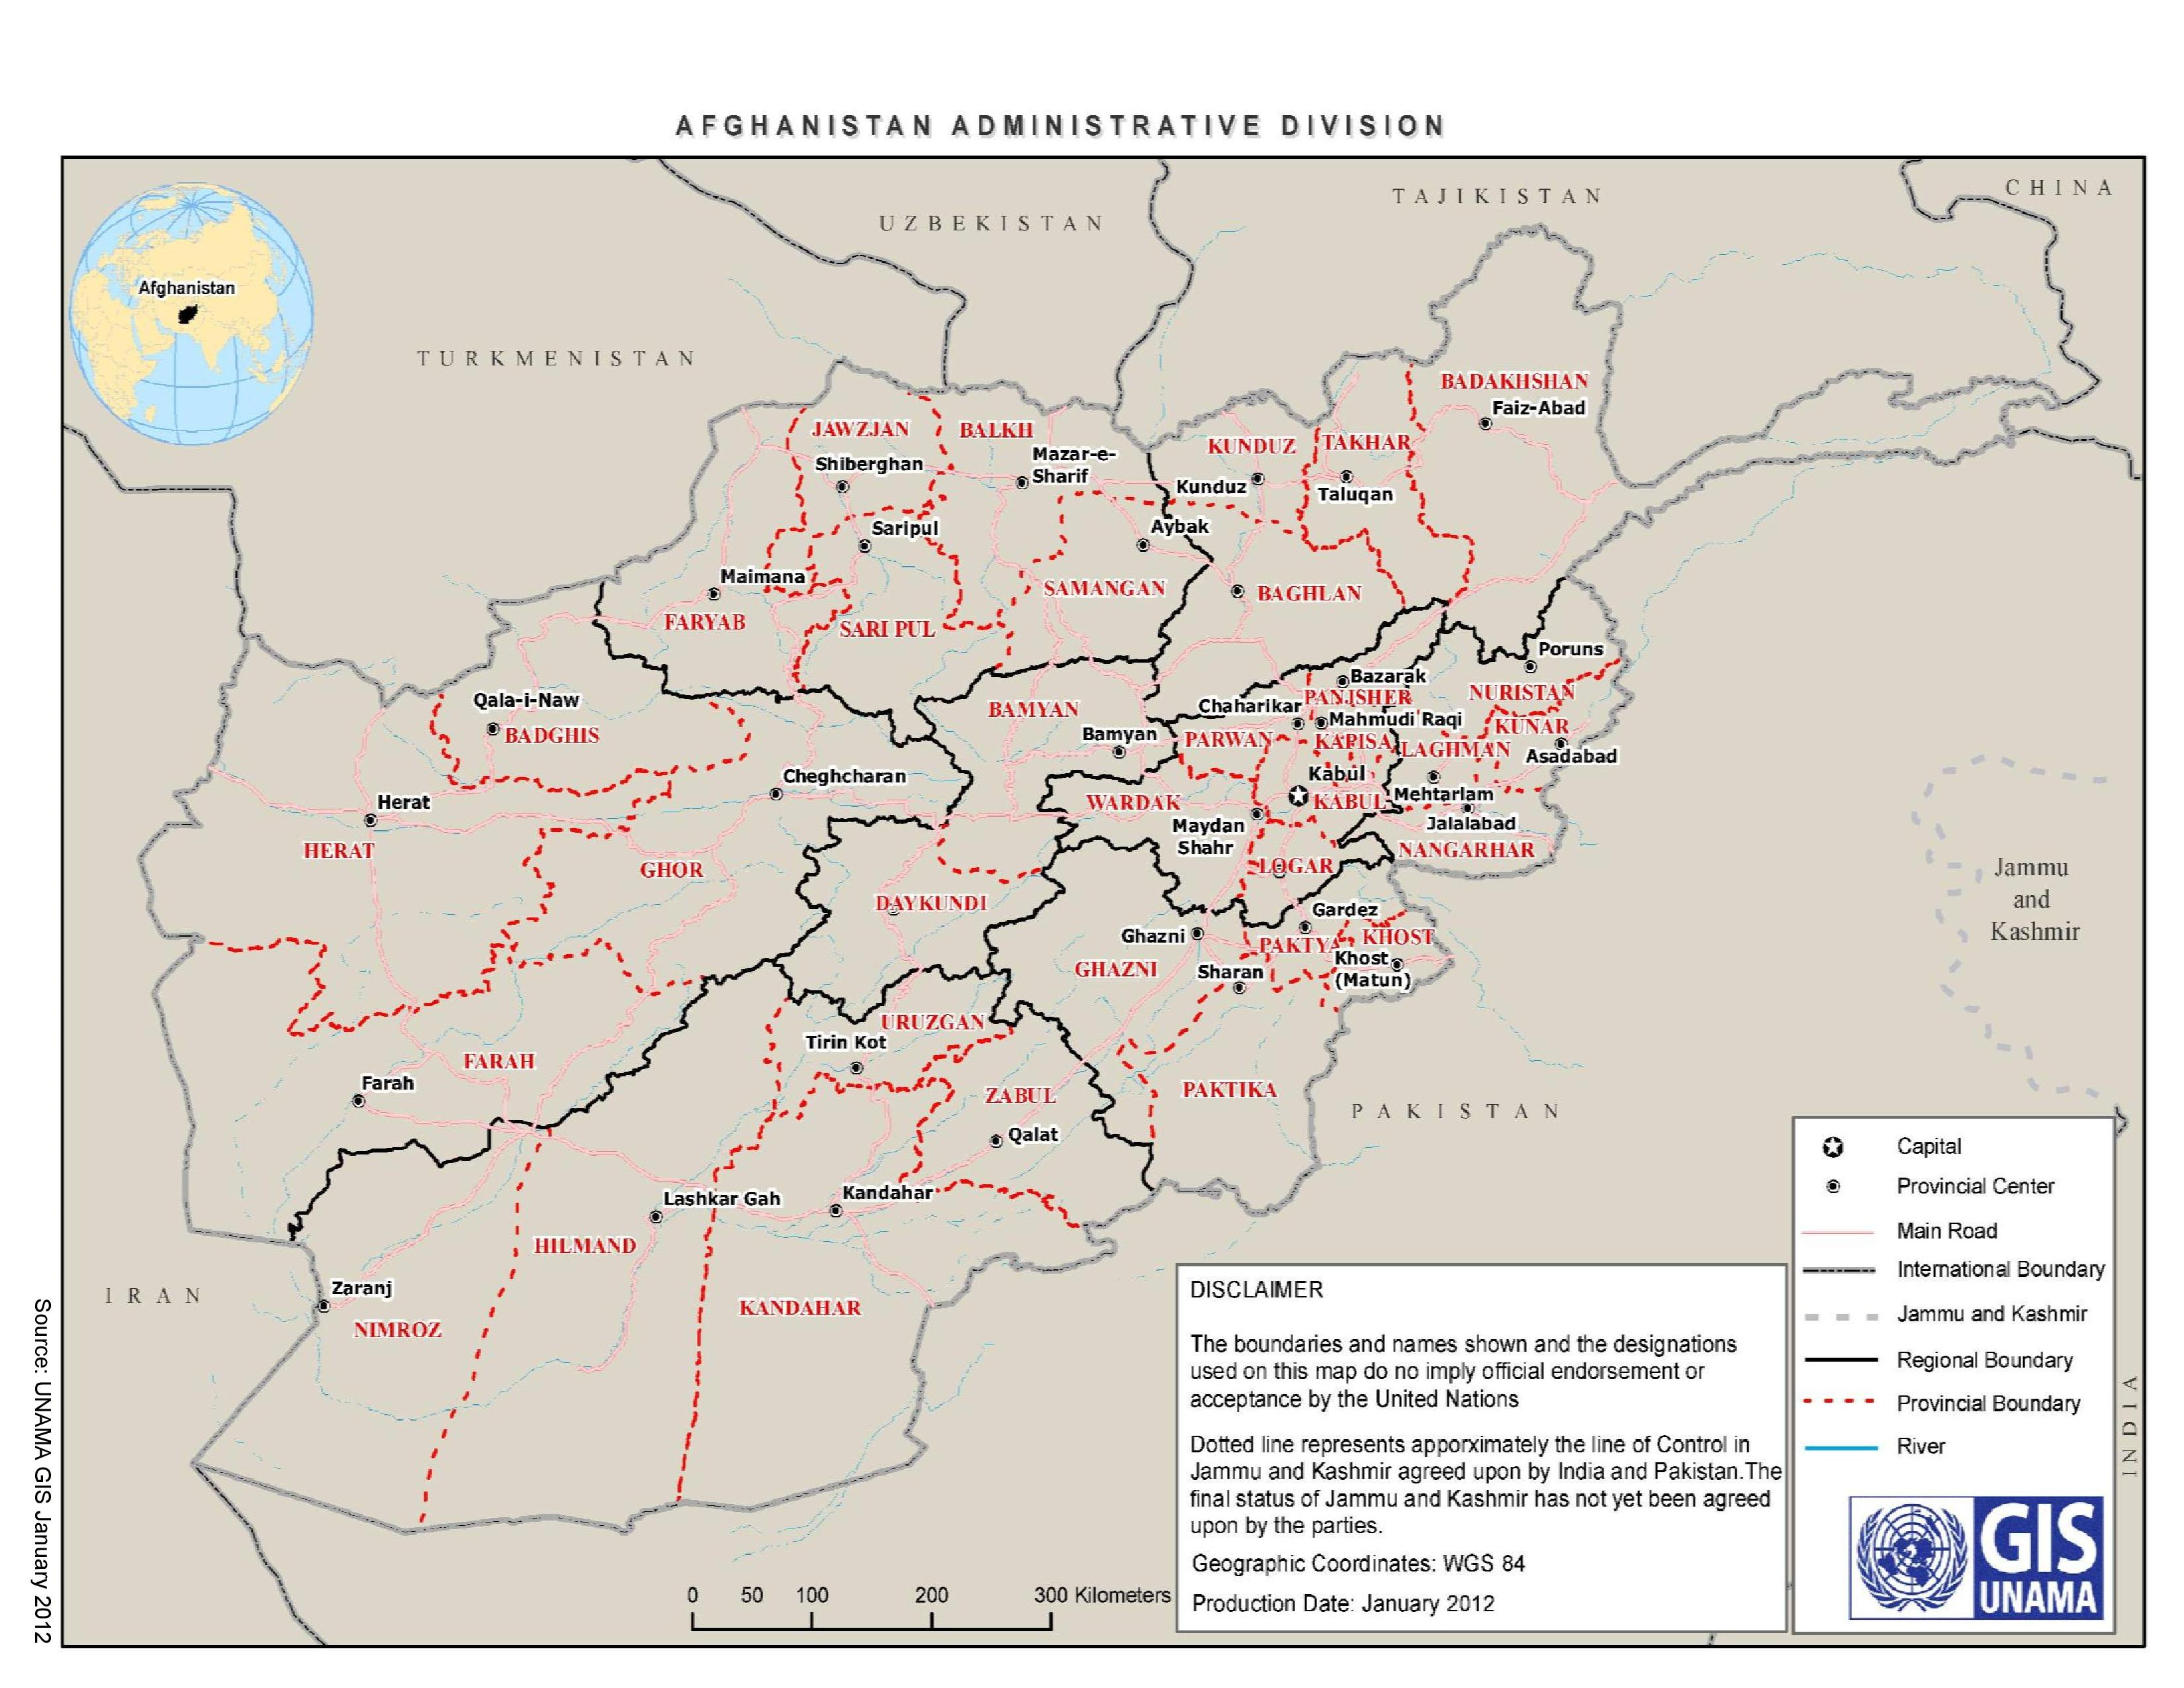 The provinces of Afghanistan: US strikes have reportedly been focused in the south and east of the country. By UNAMA the UN Assistance Mission in Afghanistan